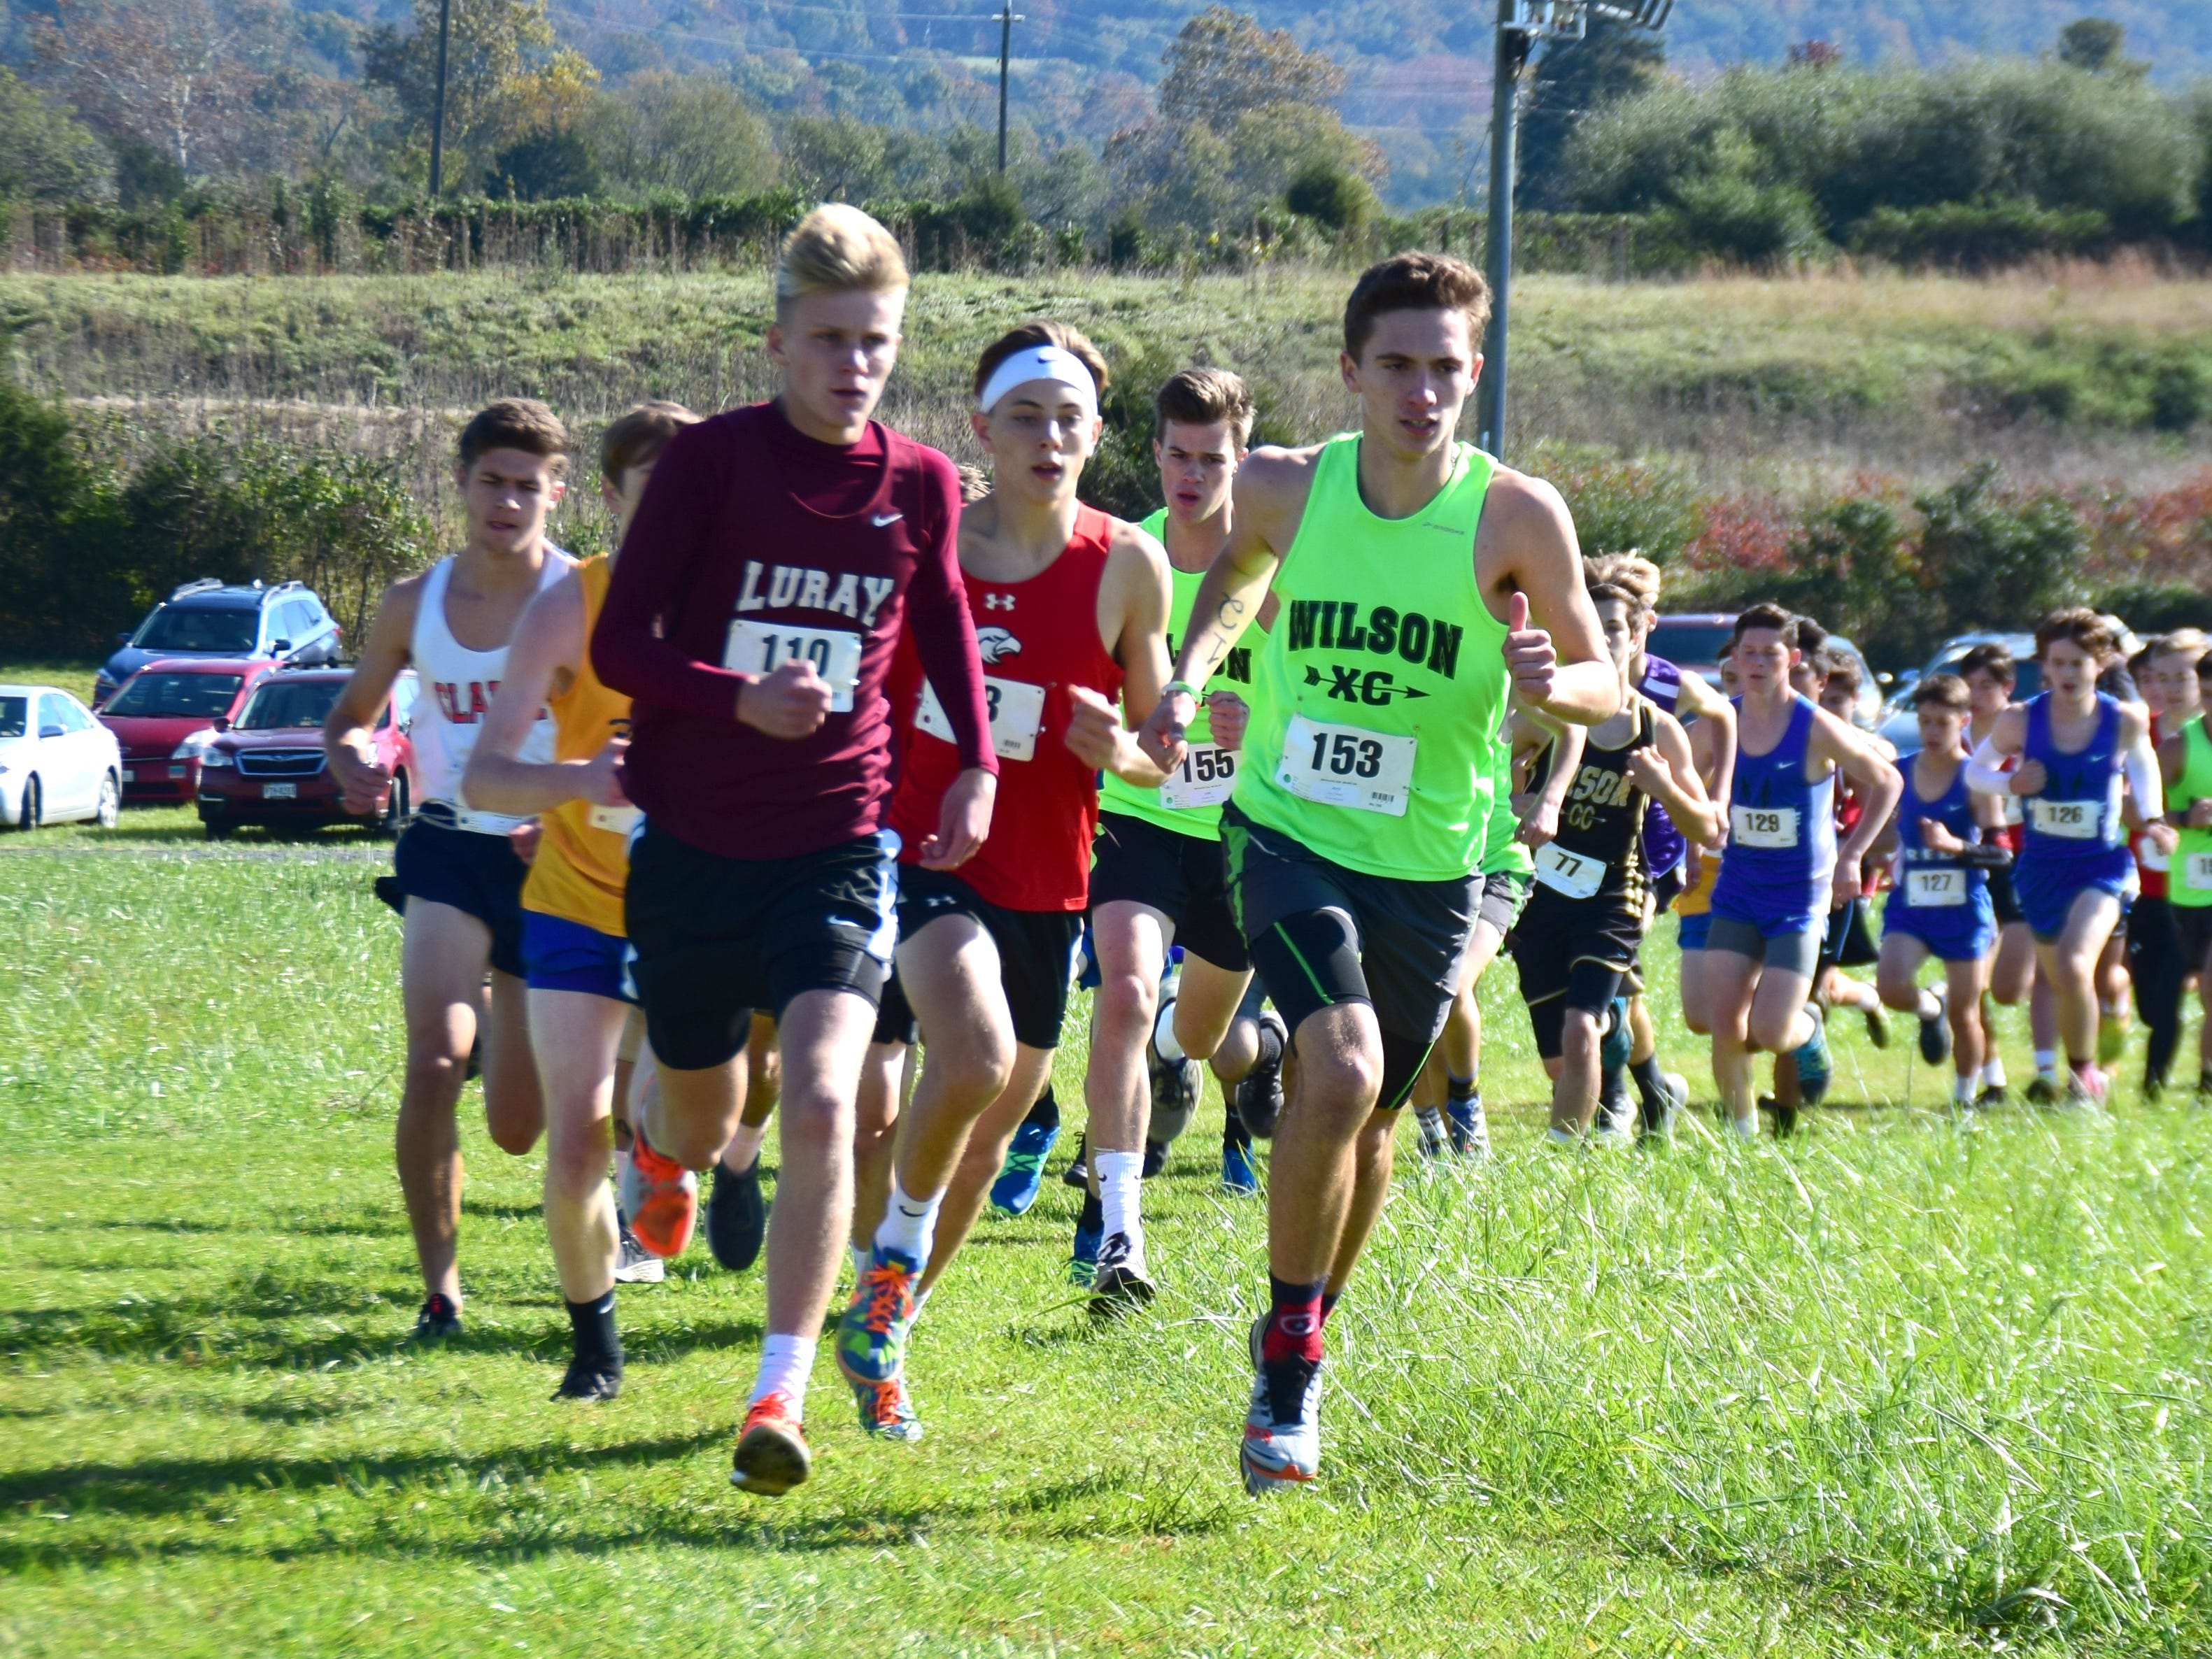 Wilson Memorial's Vincent Leo leads the main pack in the early stages of the boys race at the VHSL Class 2, Region B Cross Country Championships on Tuesday, Oct. 30, 2018, at New Market Battlefield Park in New Market, Va.